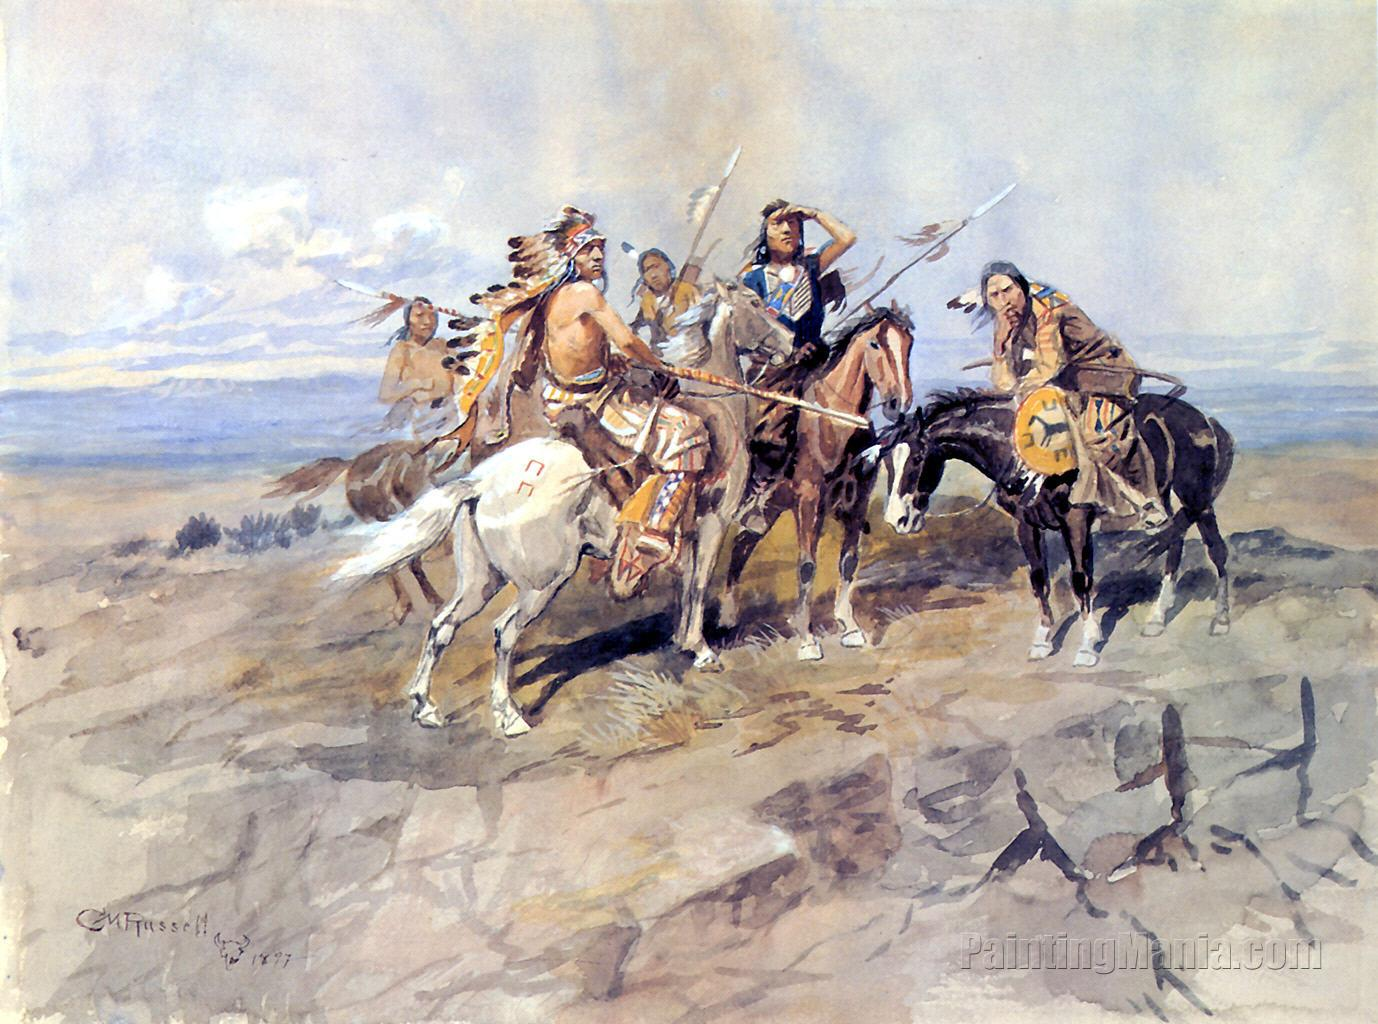 Approach of the White Men 1897